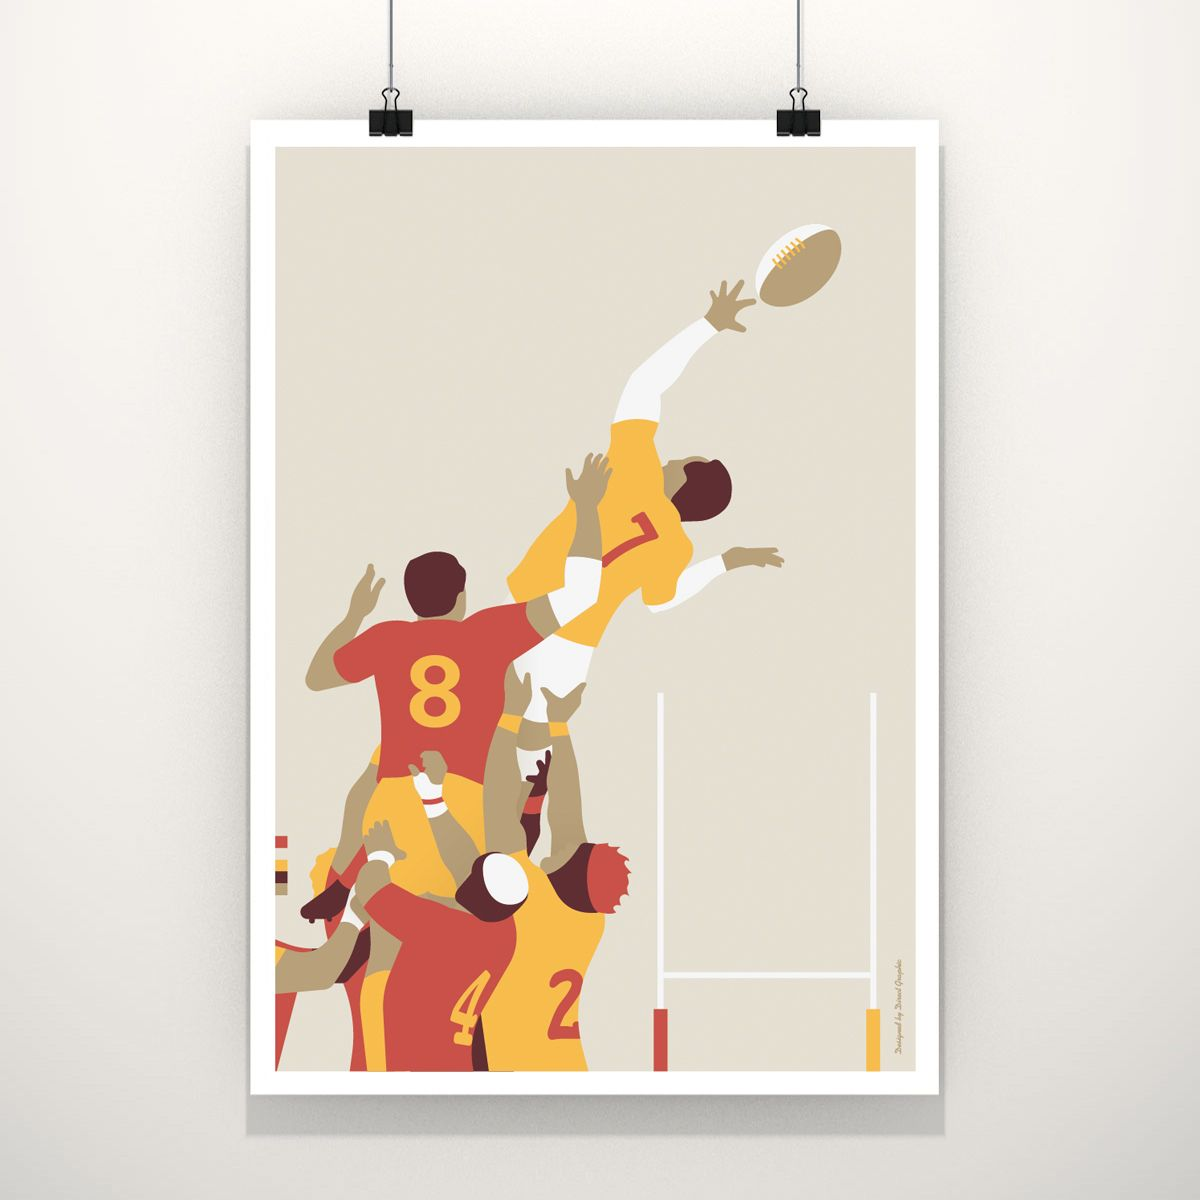 La Touche De Rugby Direct Graphic Design Dessin Rugby Rugby Illustration